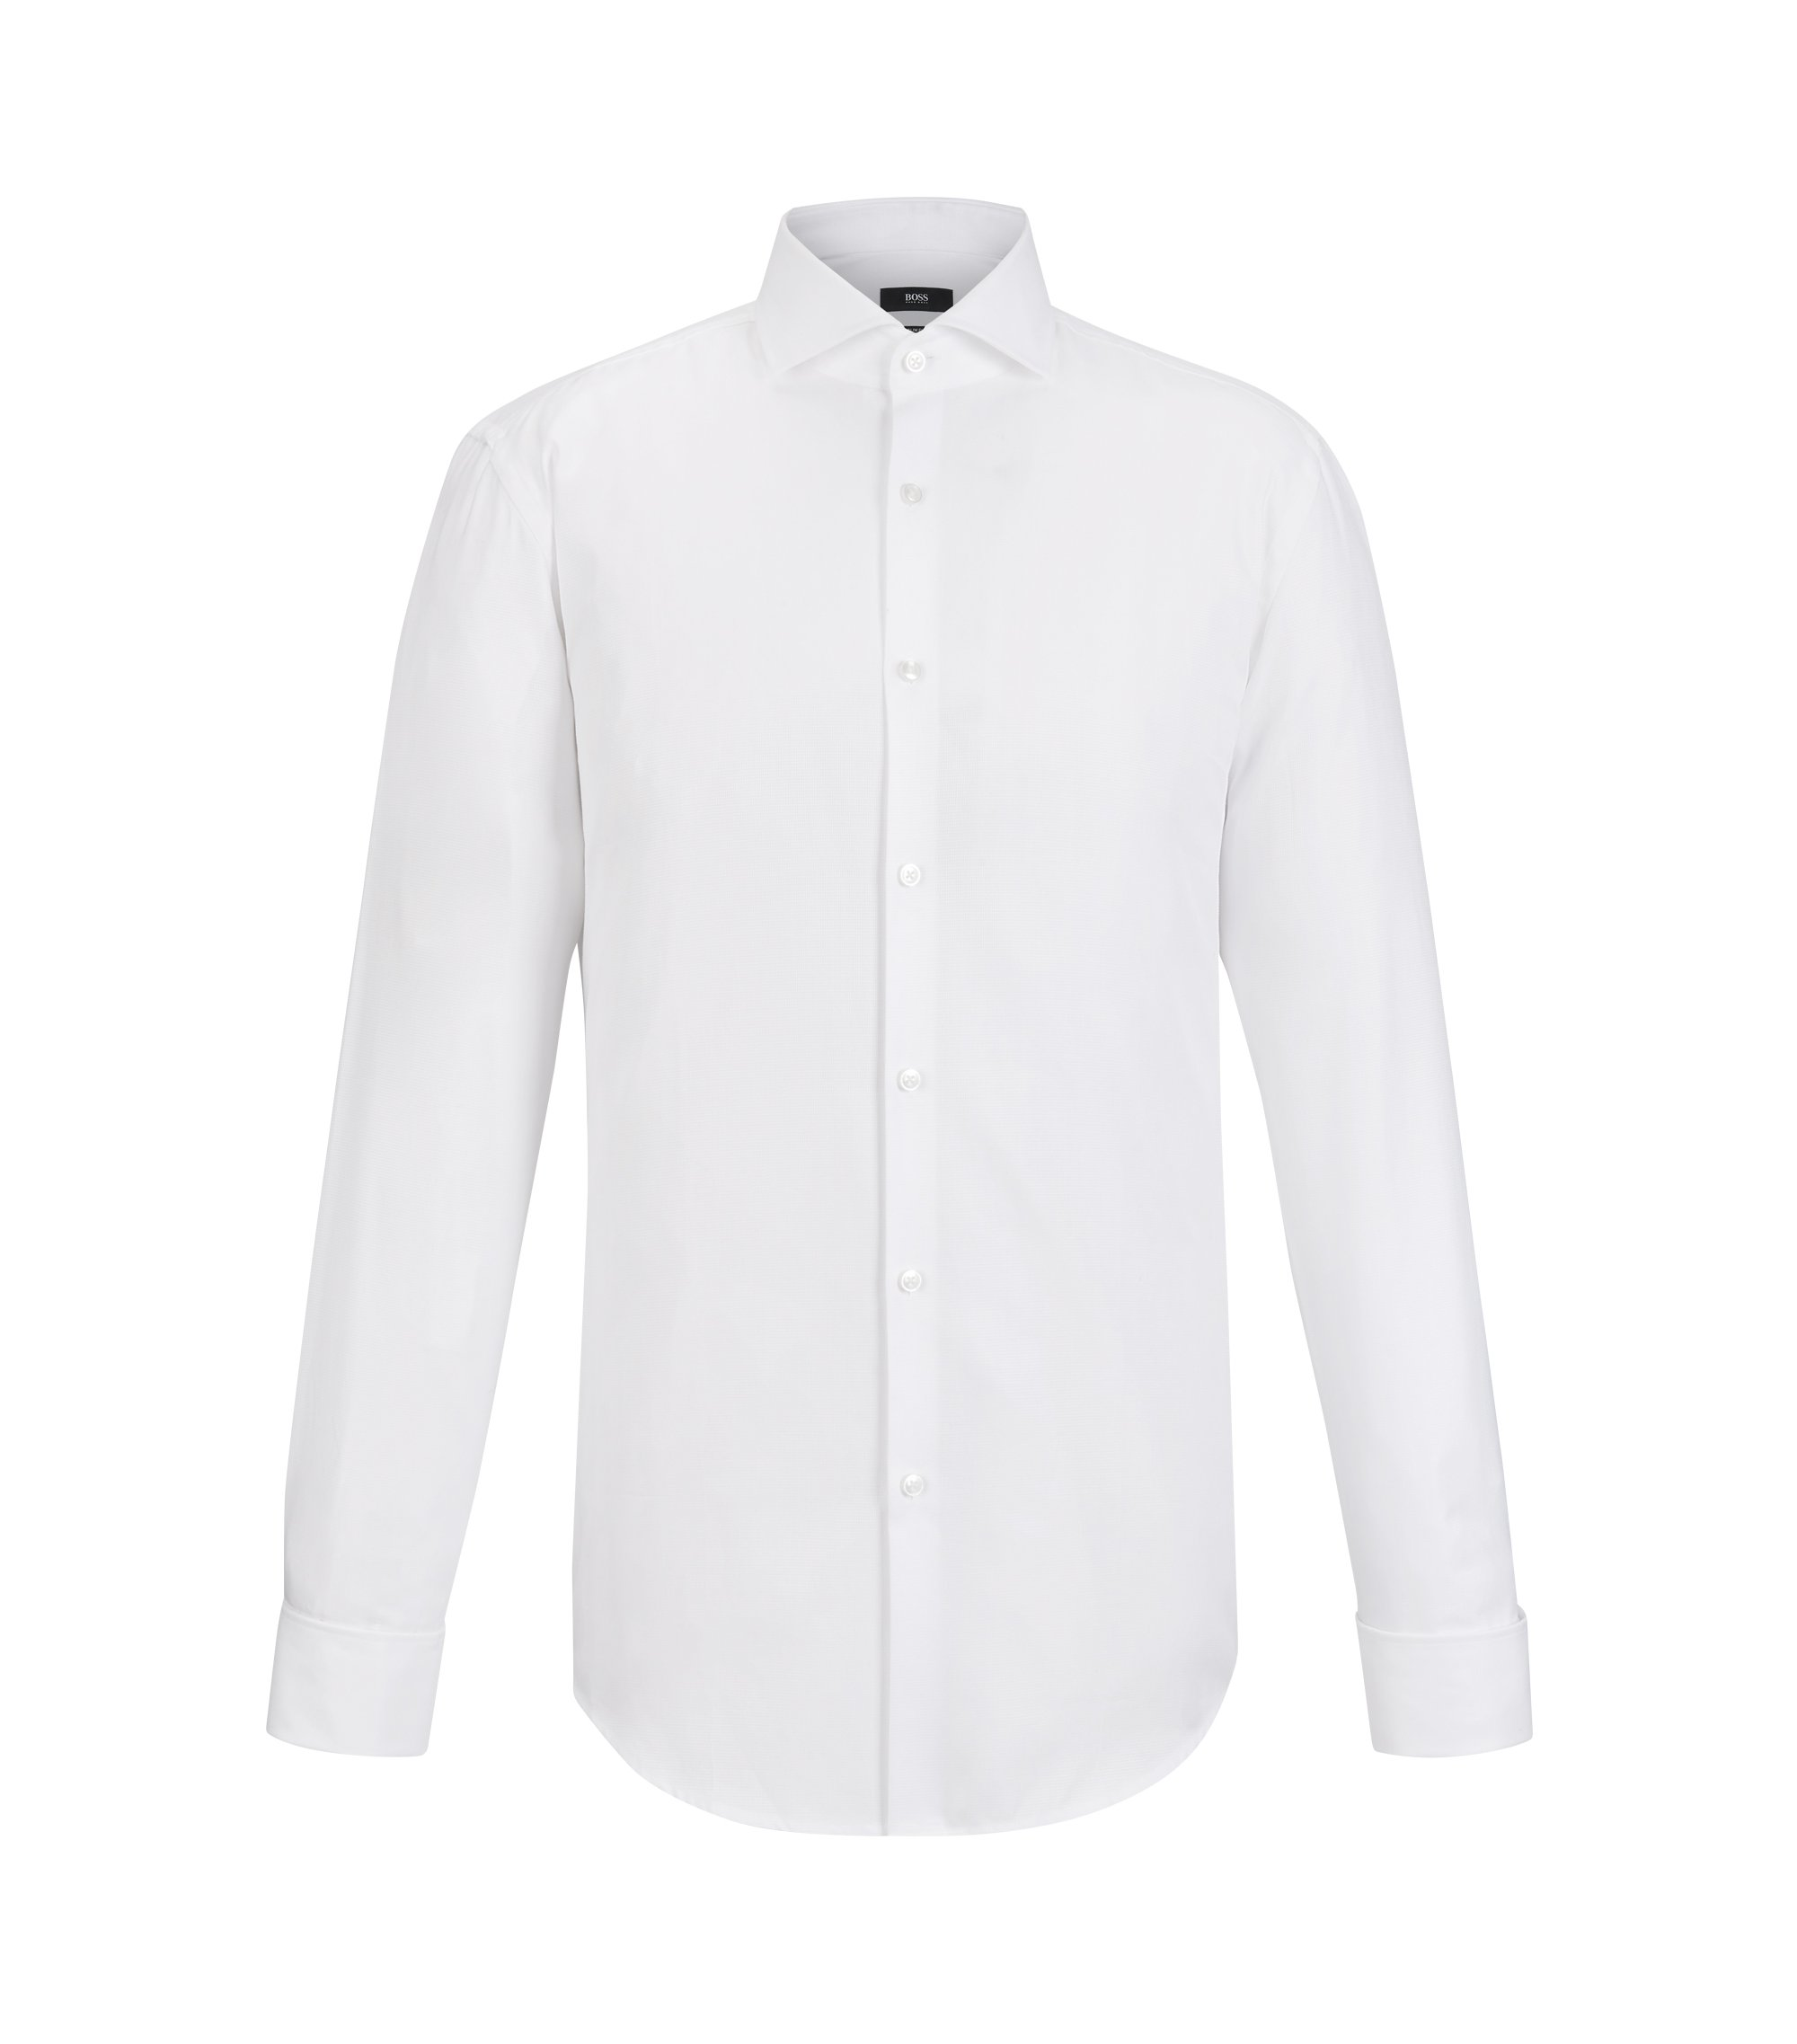 Cotton Dress Shirt, Slim Fit | Jaiden, White